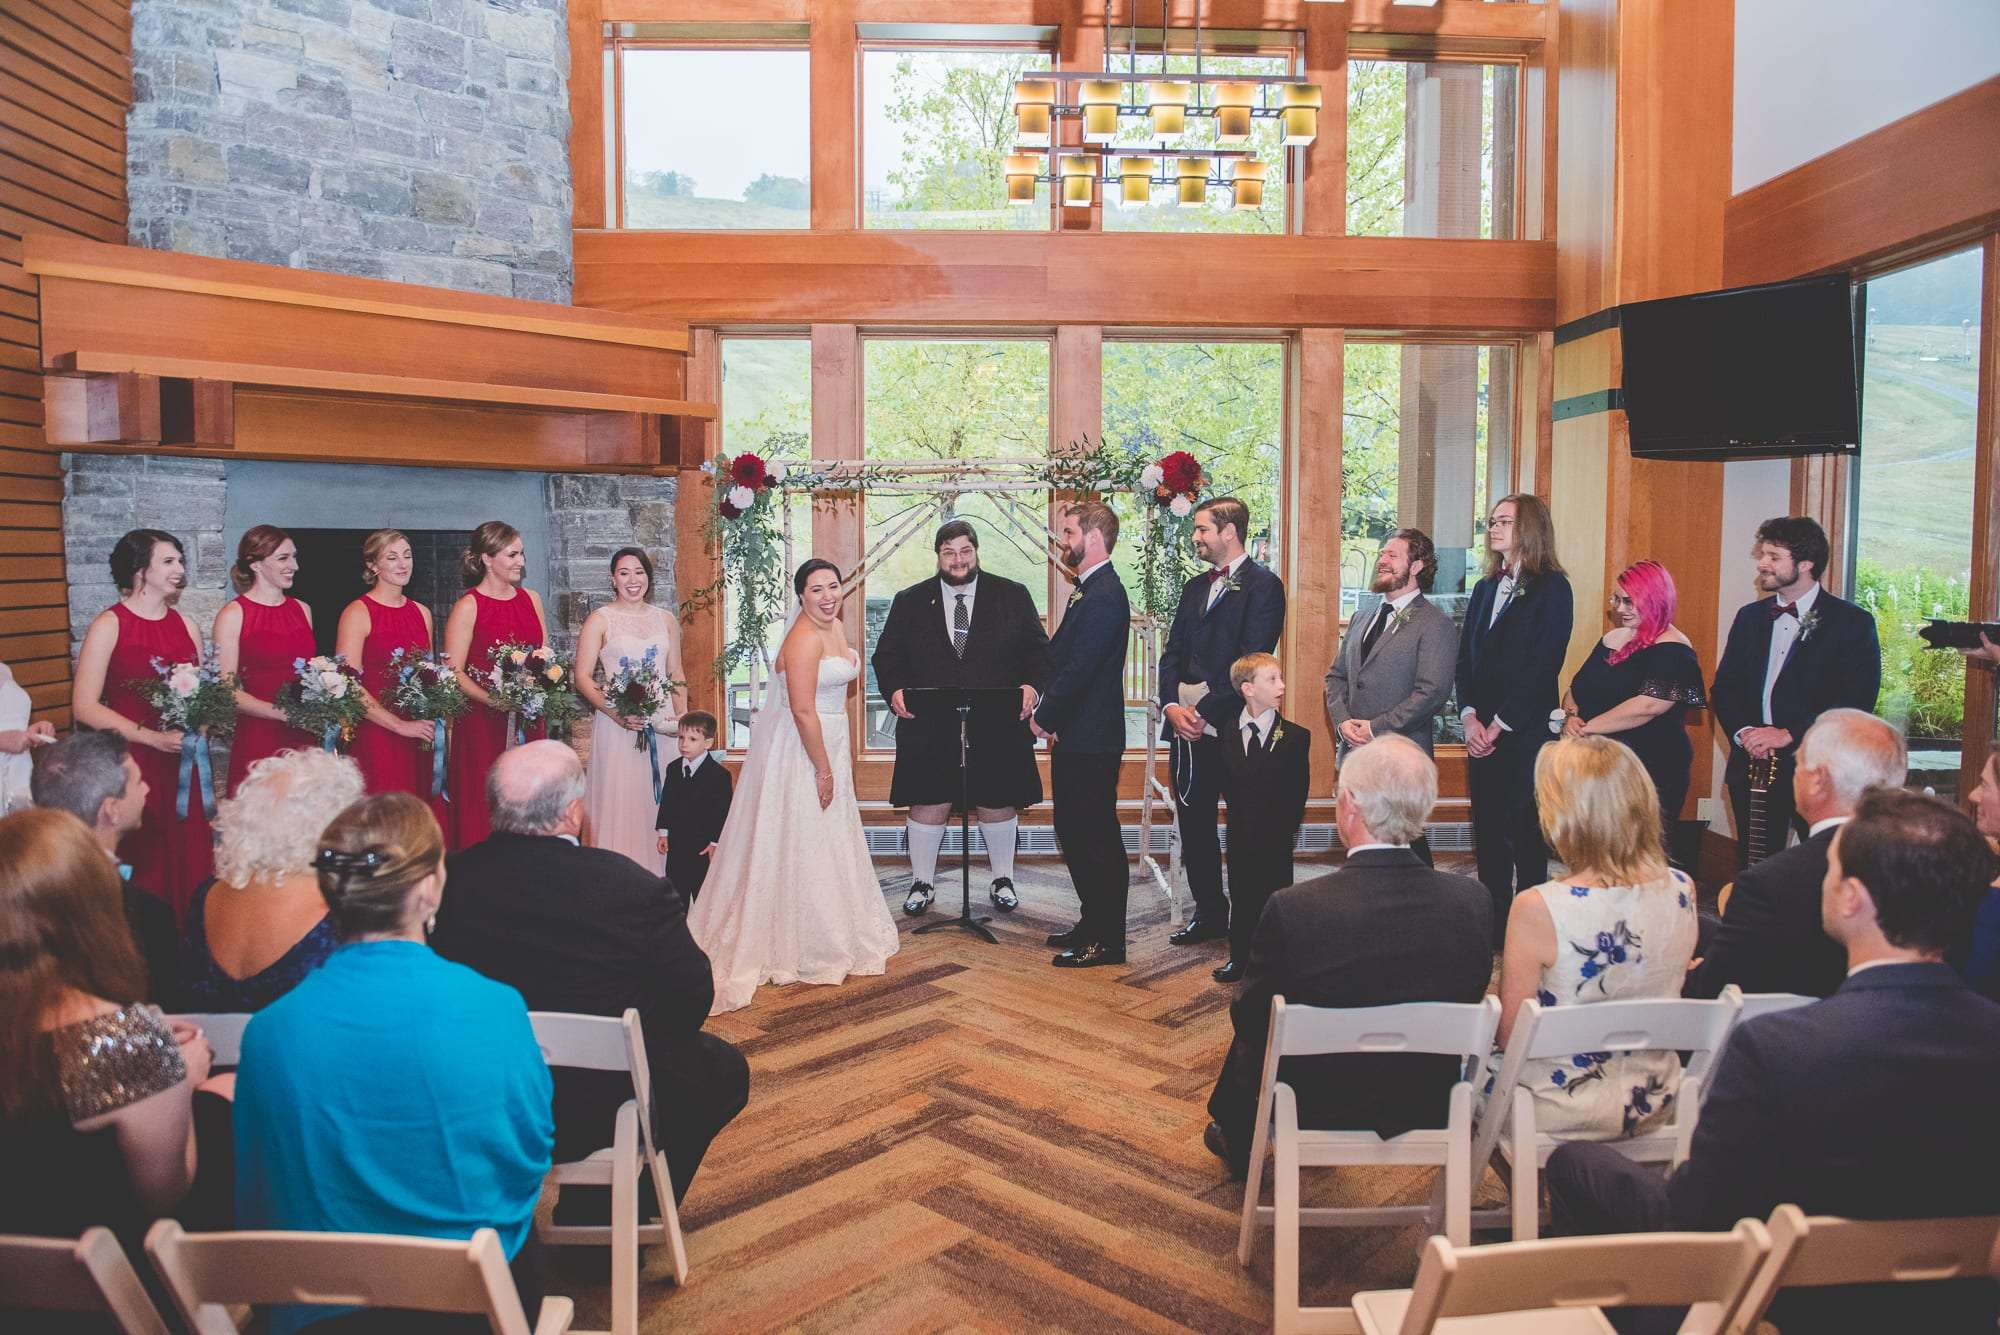 The Lodge at Spruce Peak Wedding photos Beaumonde originals